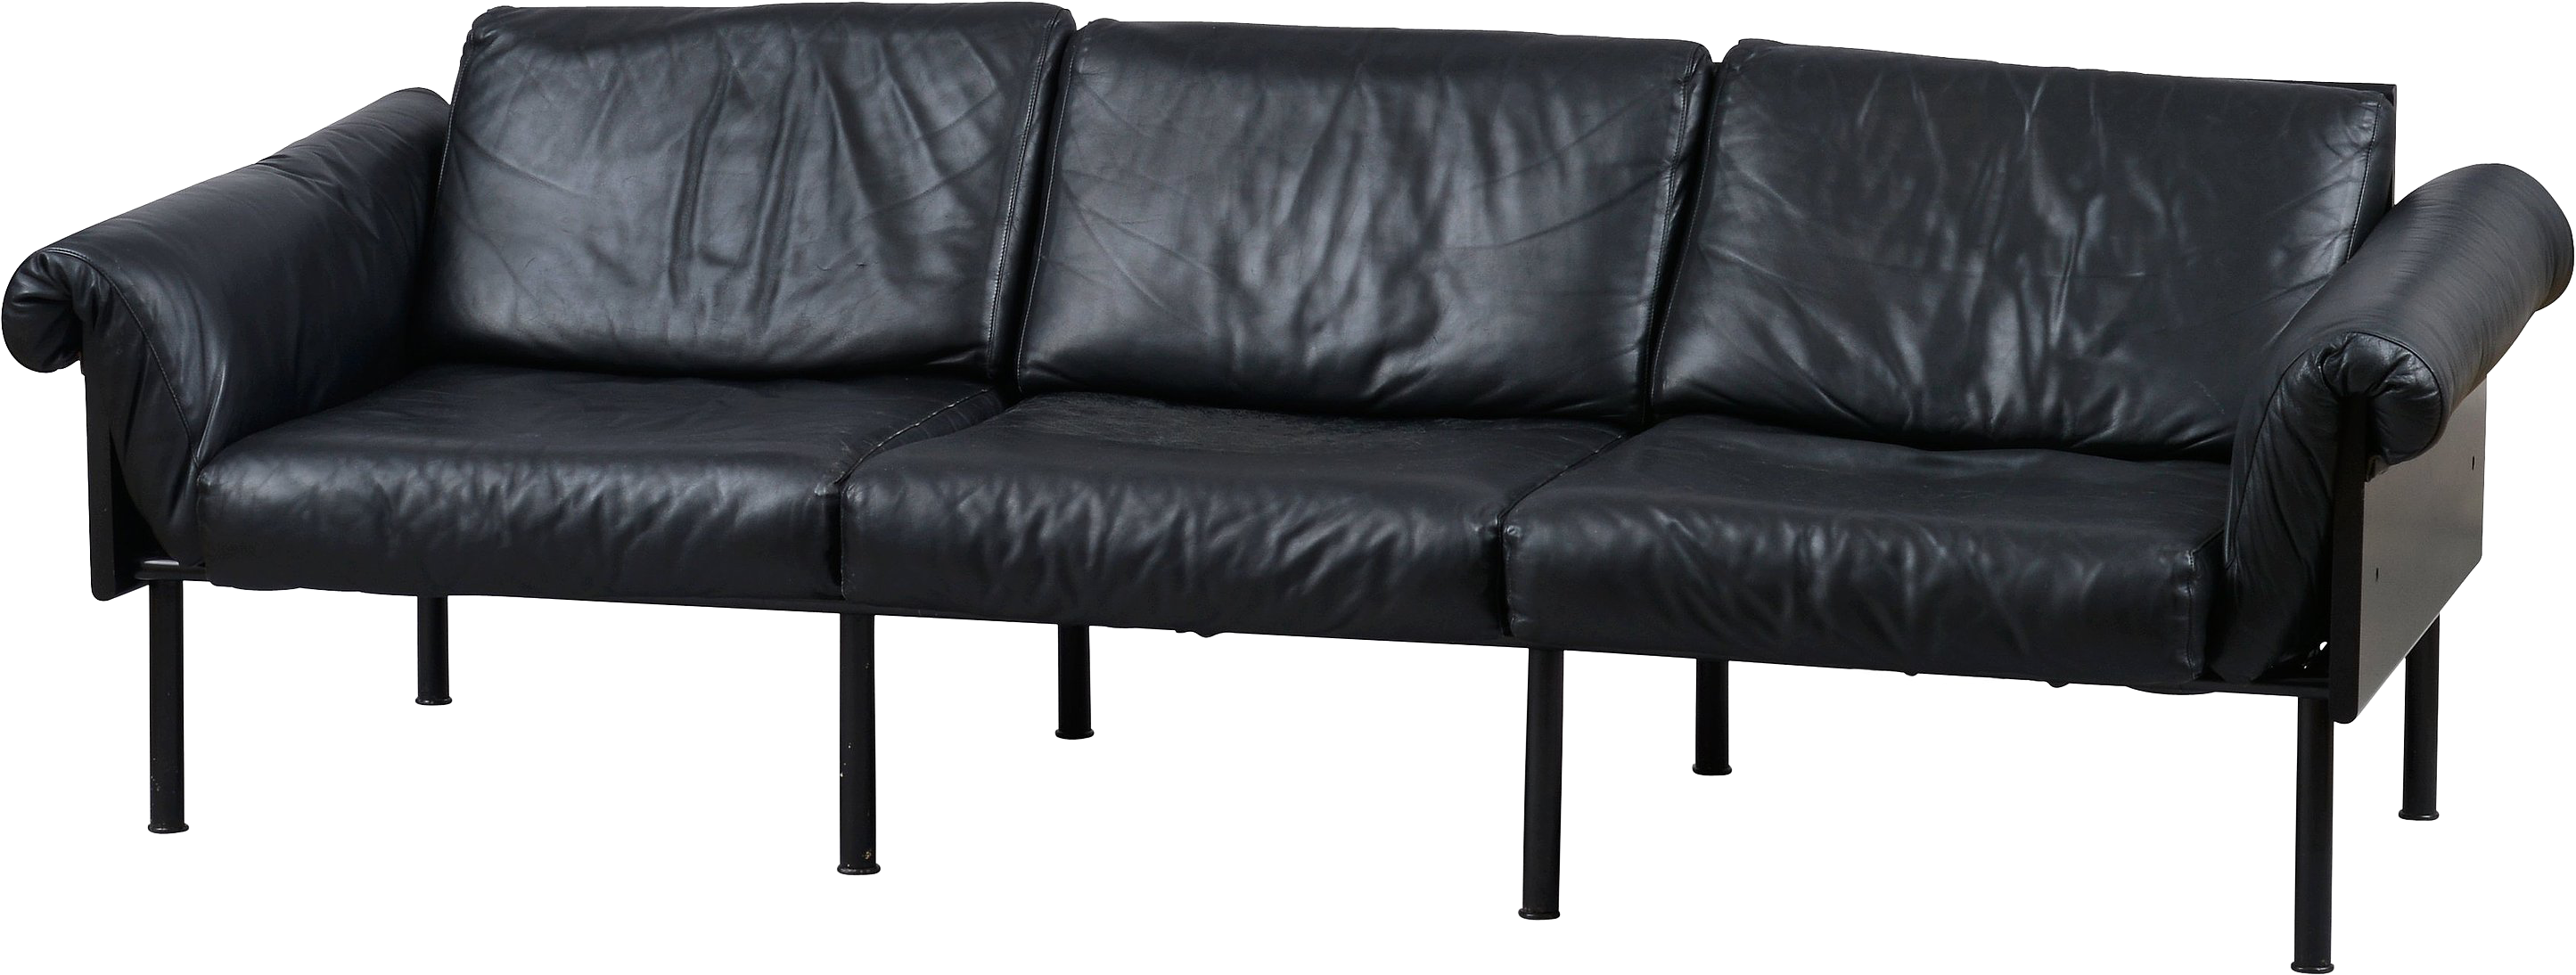 Sofa PNG images free